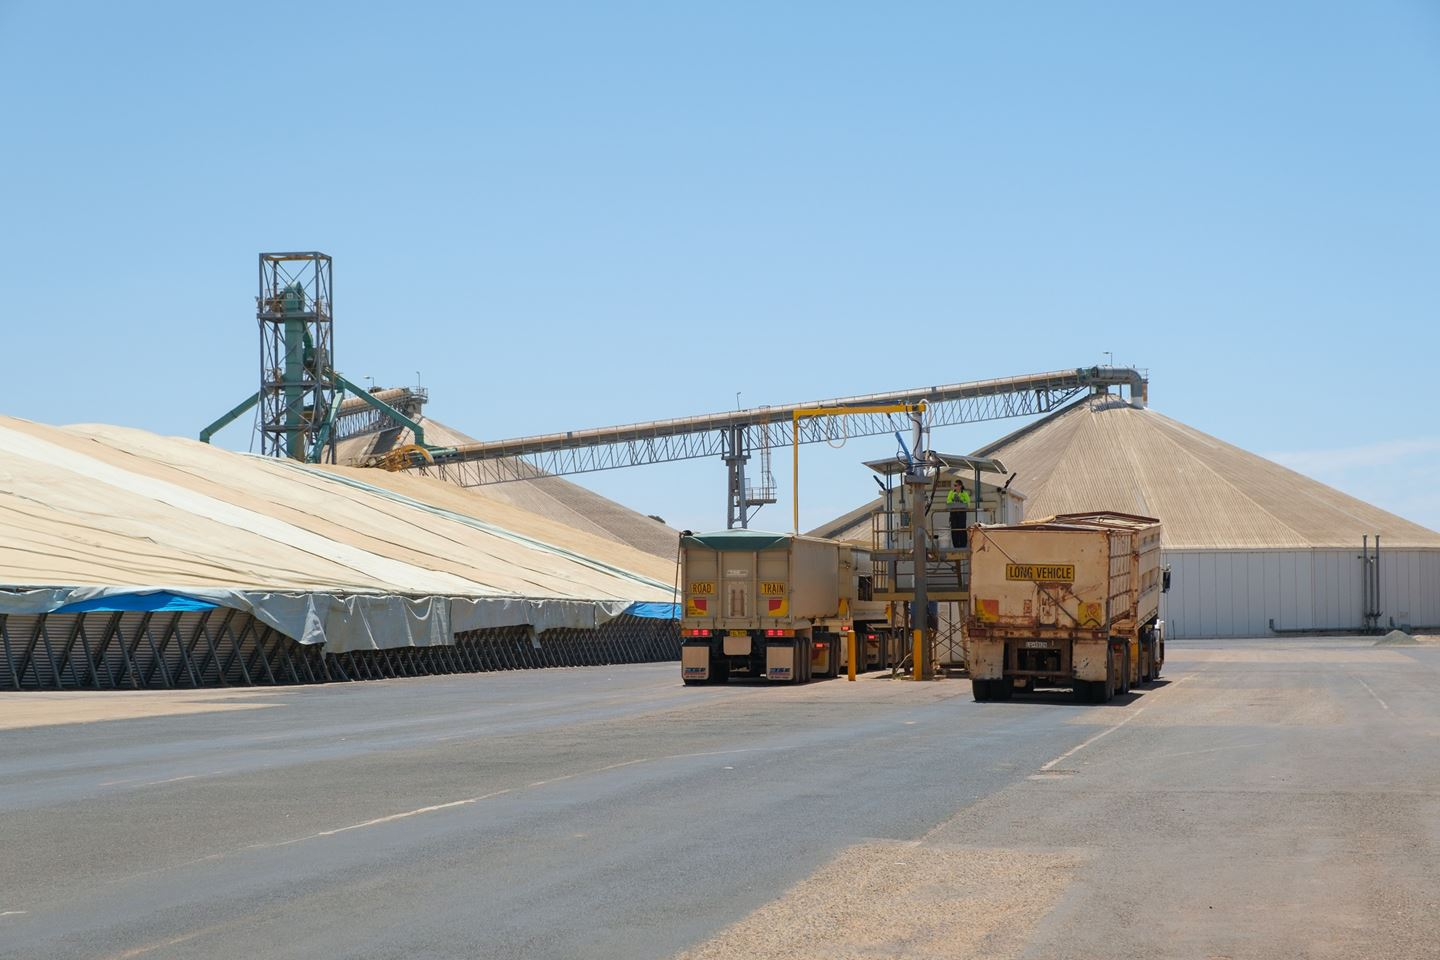 Two trucks lining up at the CBH site sample hut to be sampled at harvest